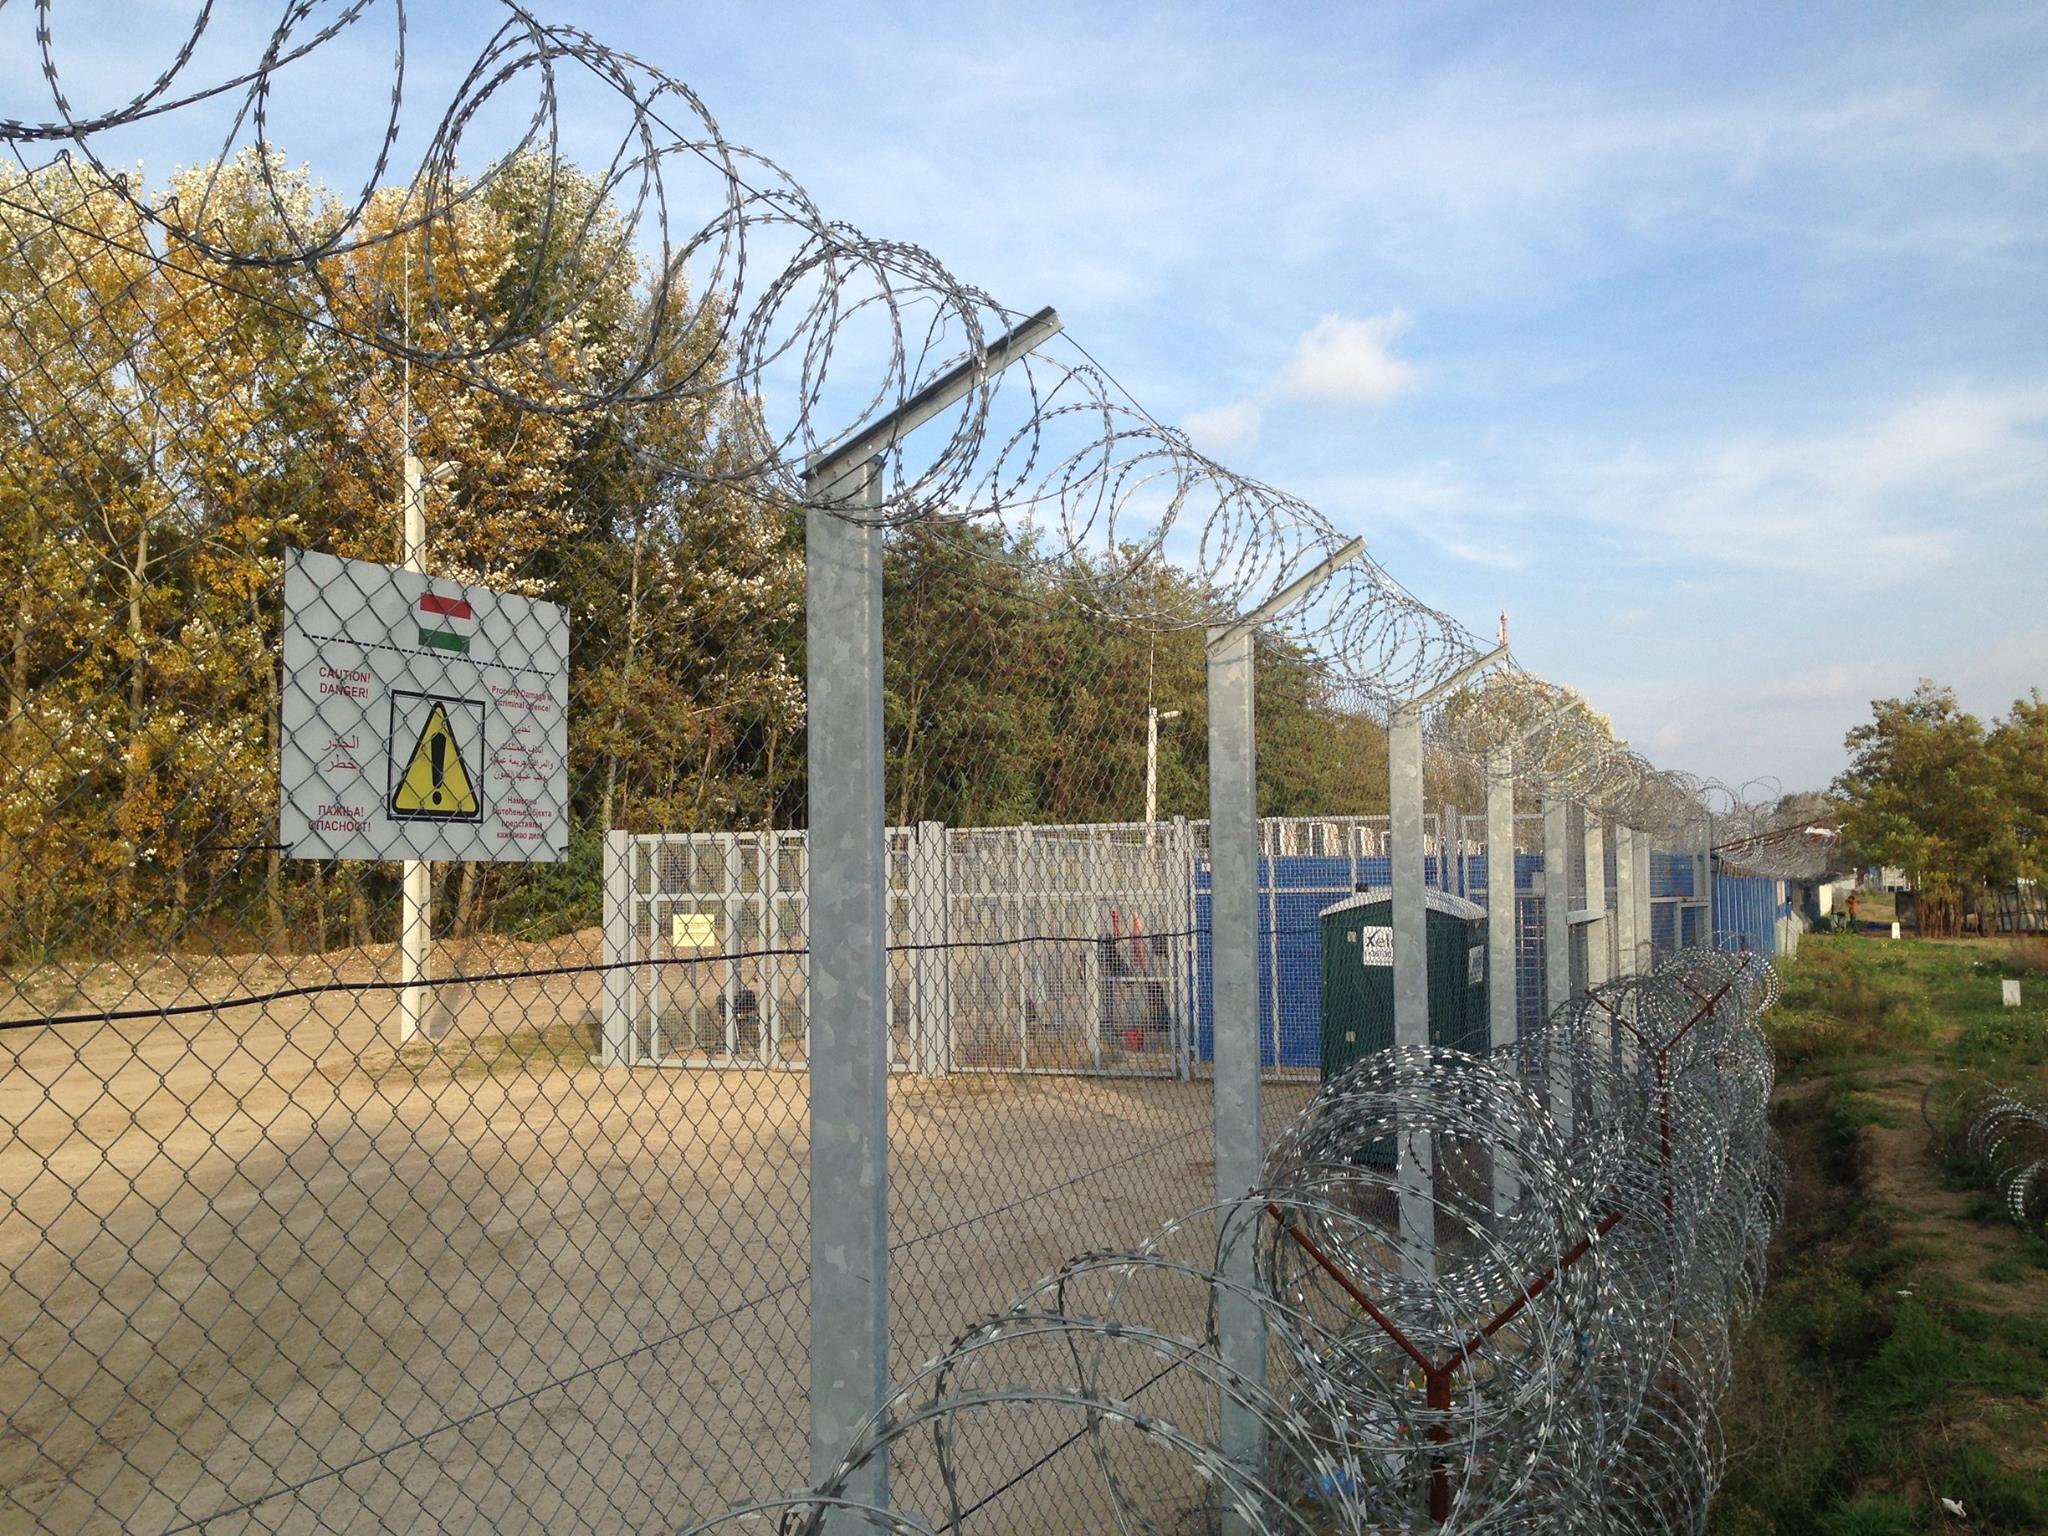 Hungary Asks EU To Help Pay For Border Fence